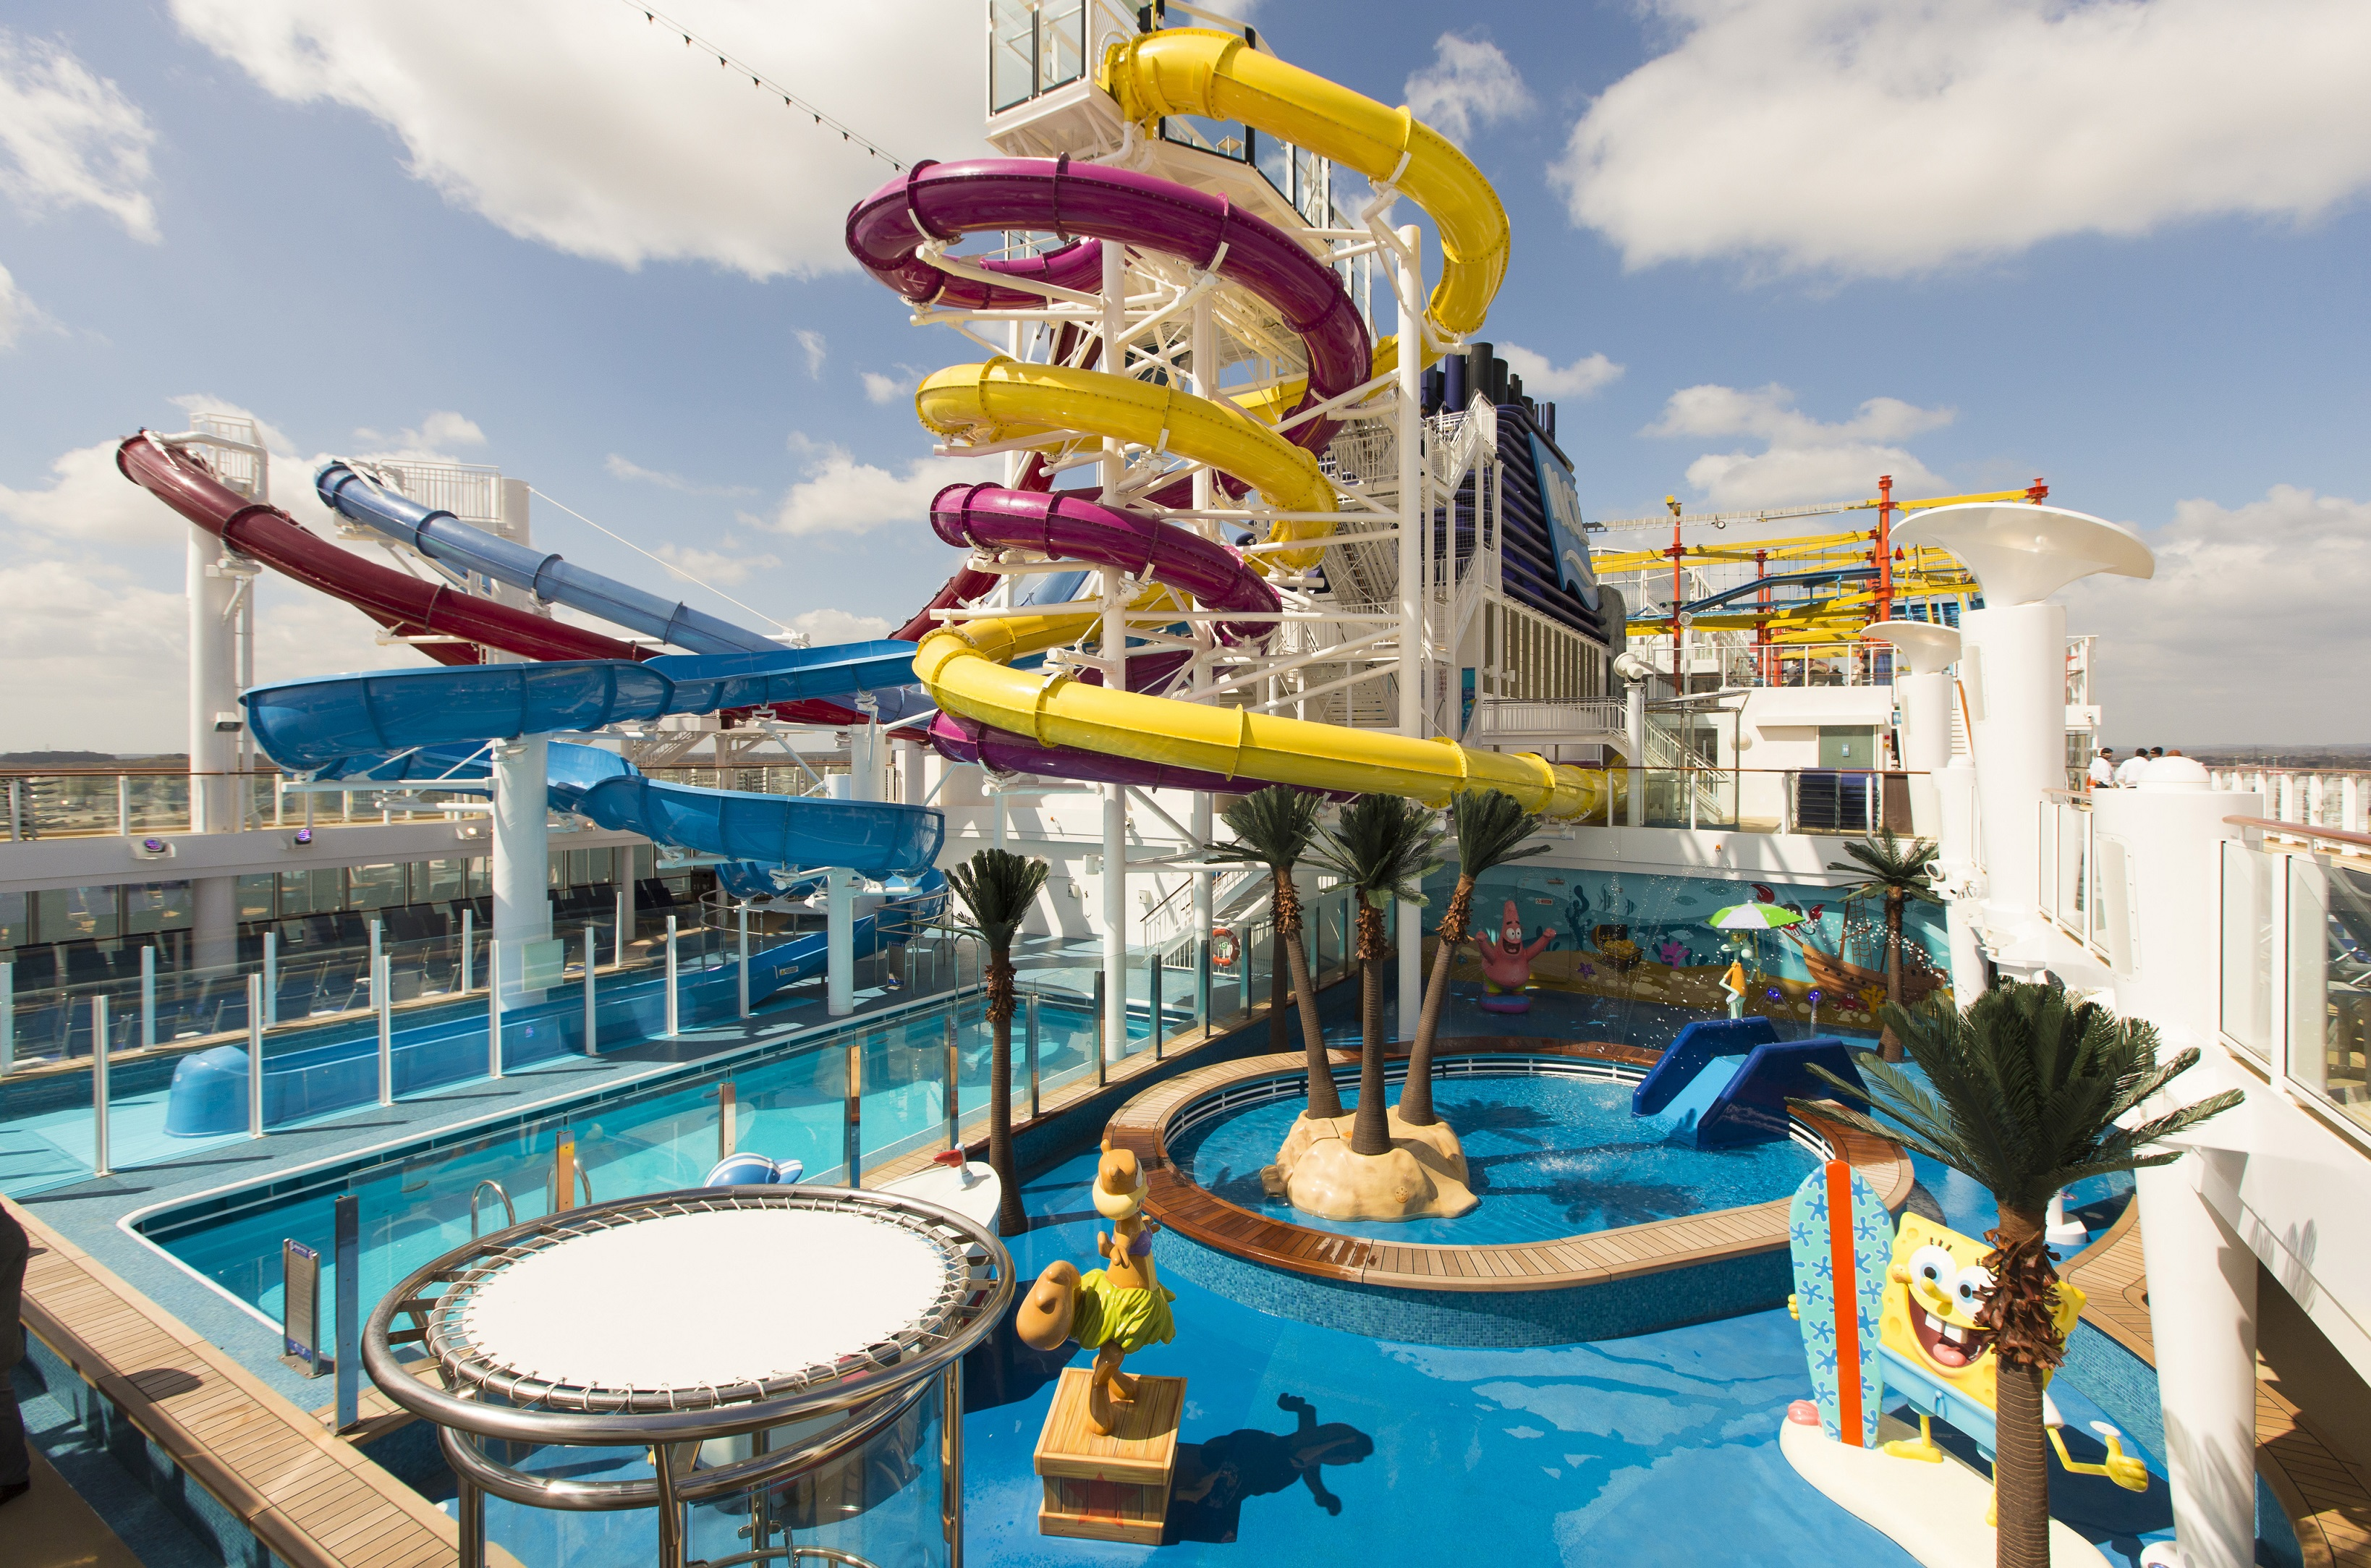 Slide 13 of 31: General views of the Aqua Park on board Norwegian Cruise Line's new ship, the 146,600 tonne Norwegian Breakaway. The ship joins as the 12th vessel in the Norwegian fleet, with New York as her year-round home port.